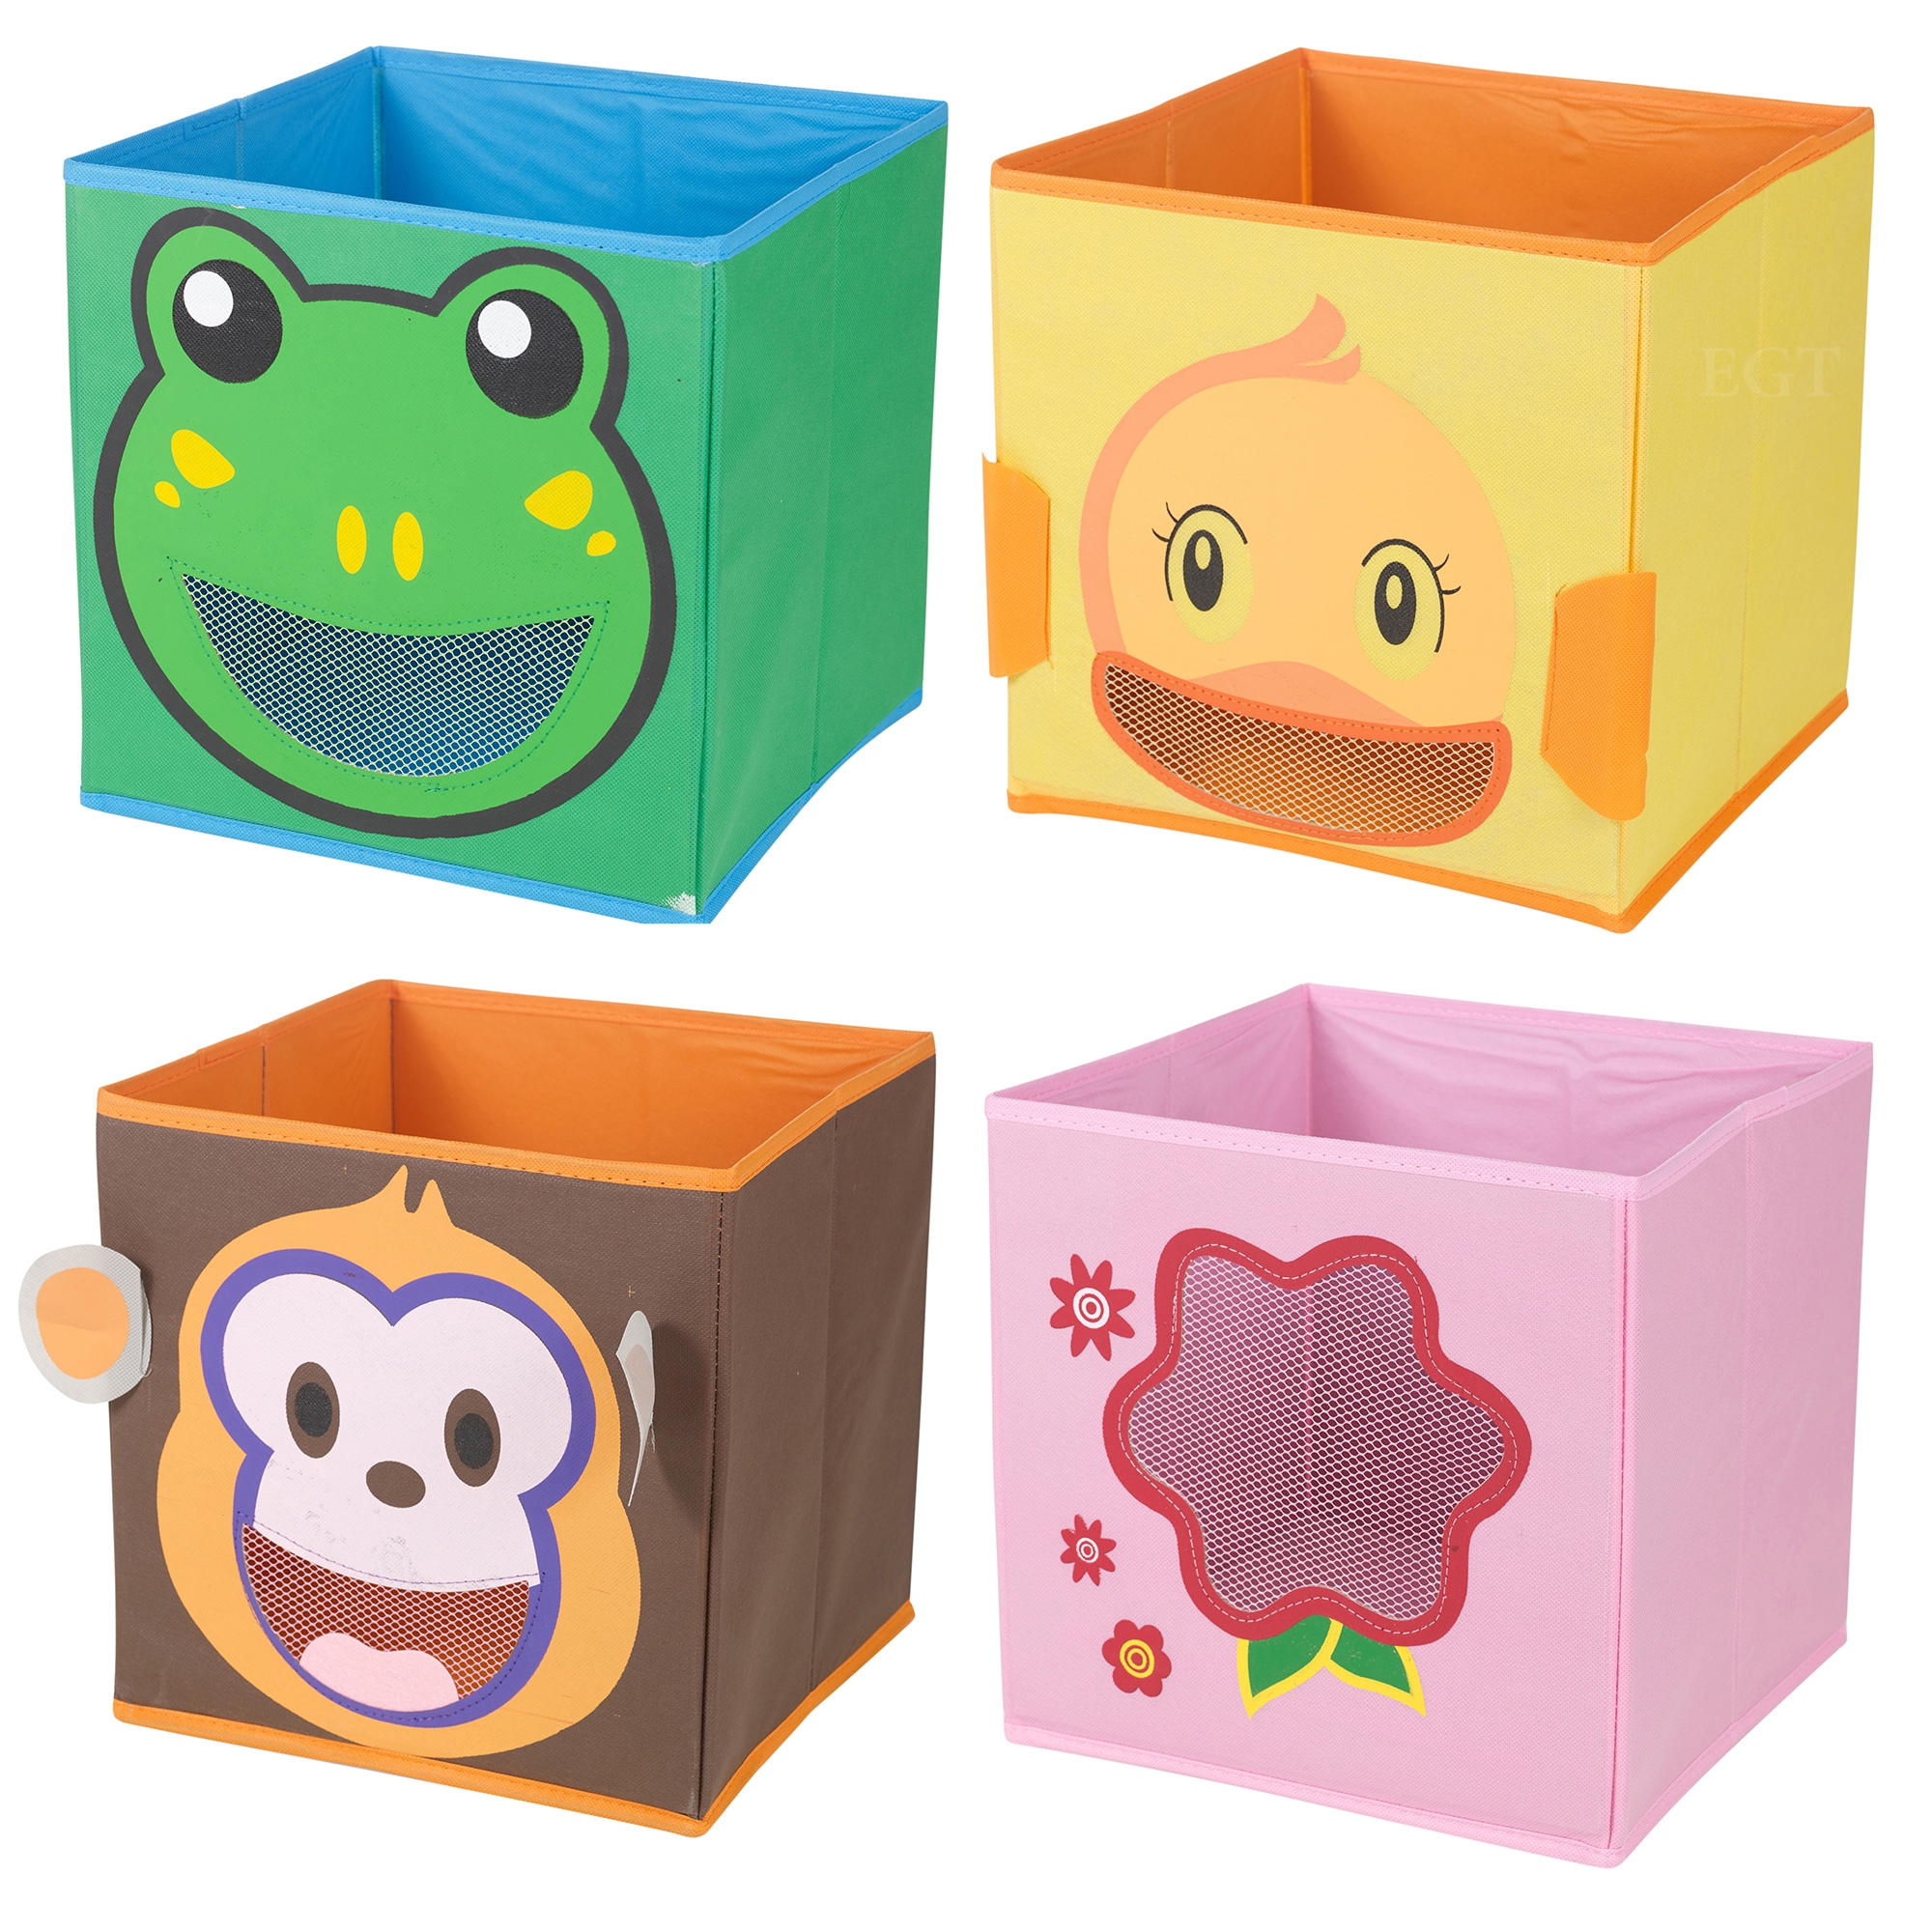 Best Toy Boxes And Chests For Kids : Kids toy animal storage box non woven fabric collapsible